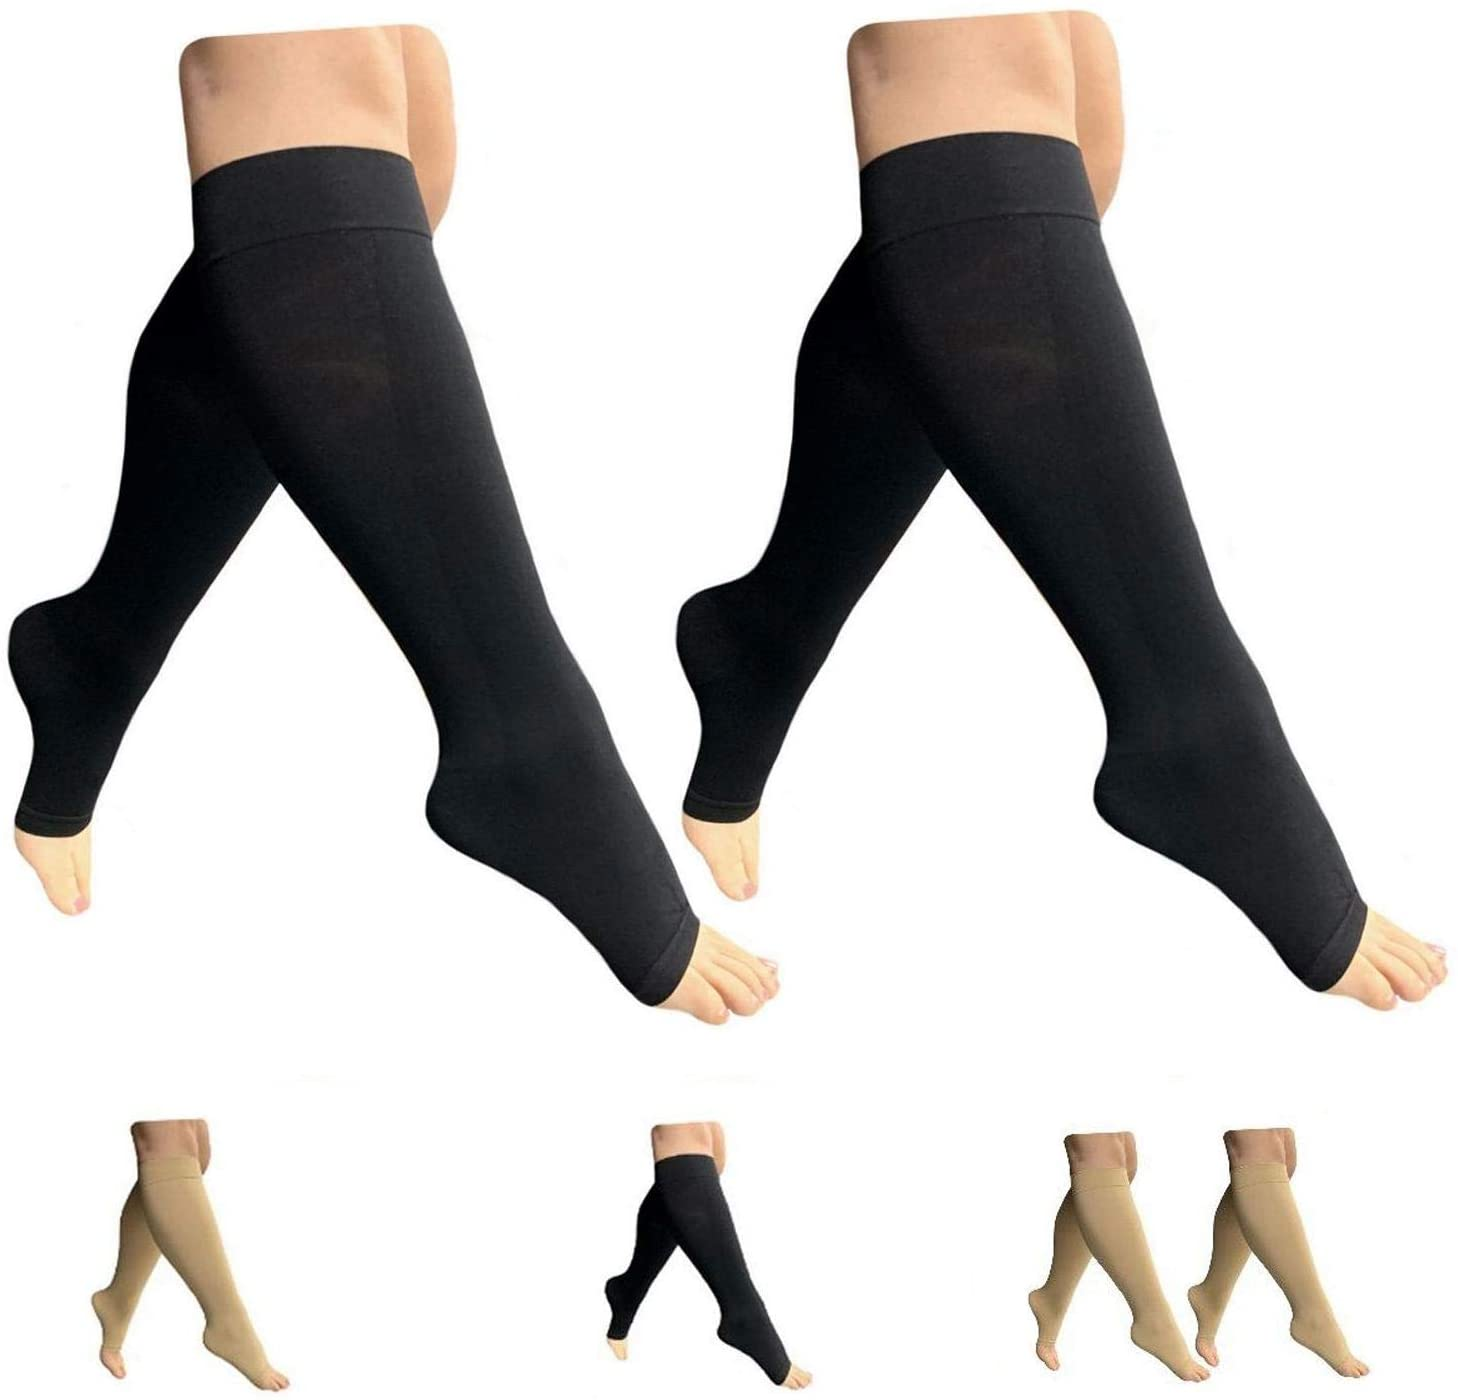 HealthyNees Open Toe 15-20 mmHg Compression Plus Size Extra Wide Calf Leg Socks (Black 2 Pairs, 4X-Large)